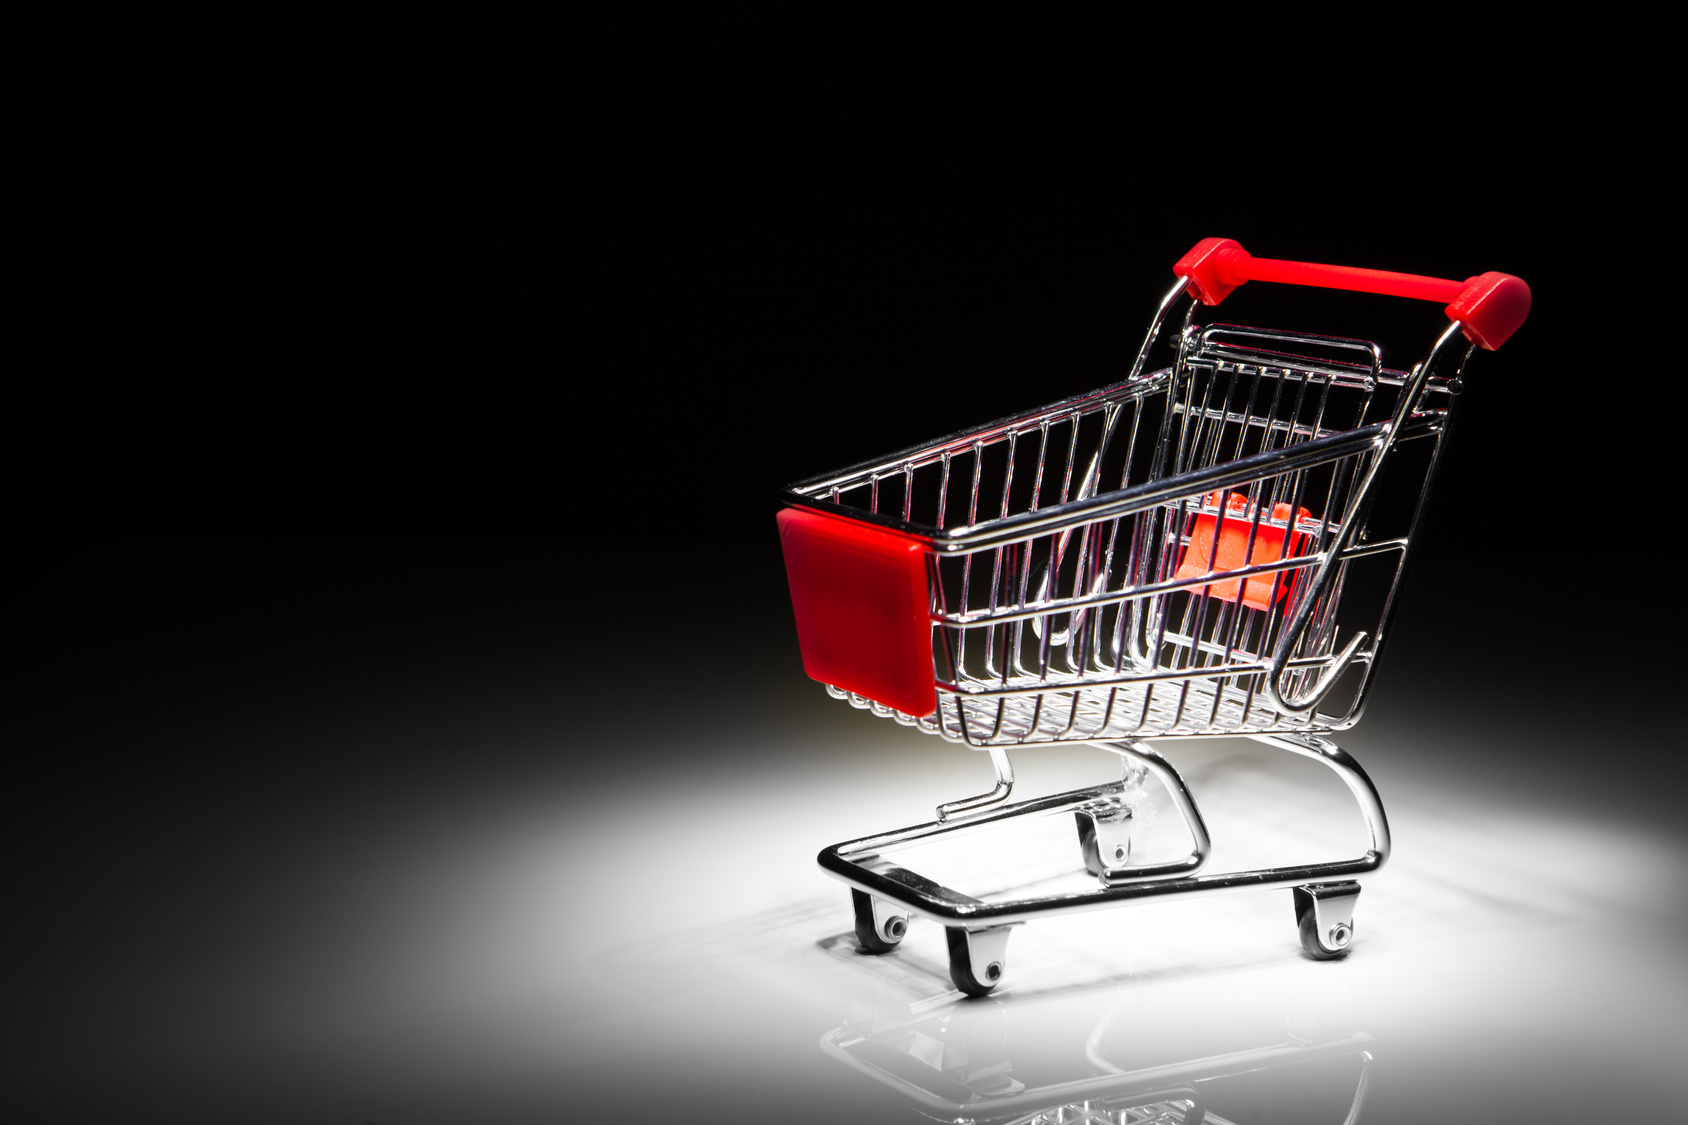 shopping cart on black background with copy-space